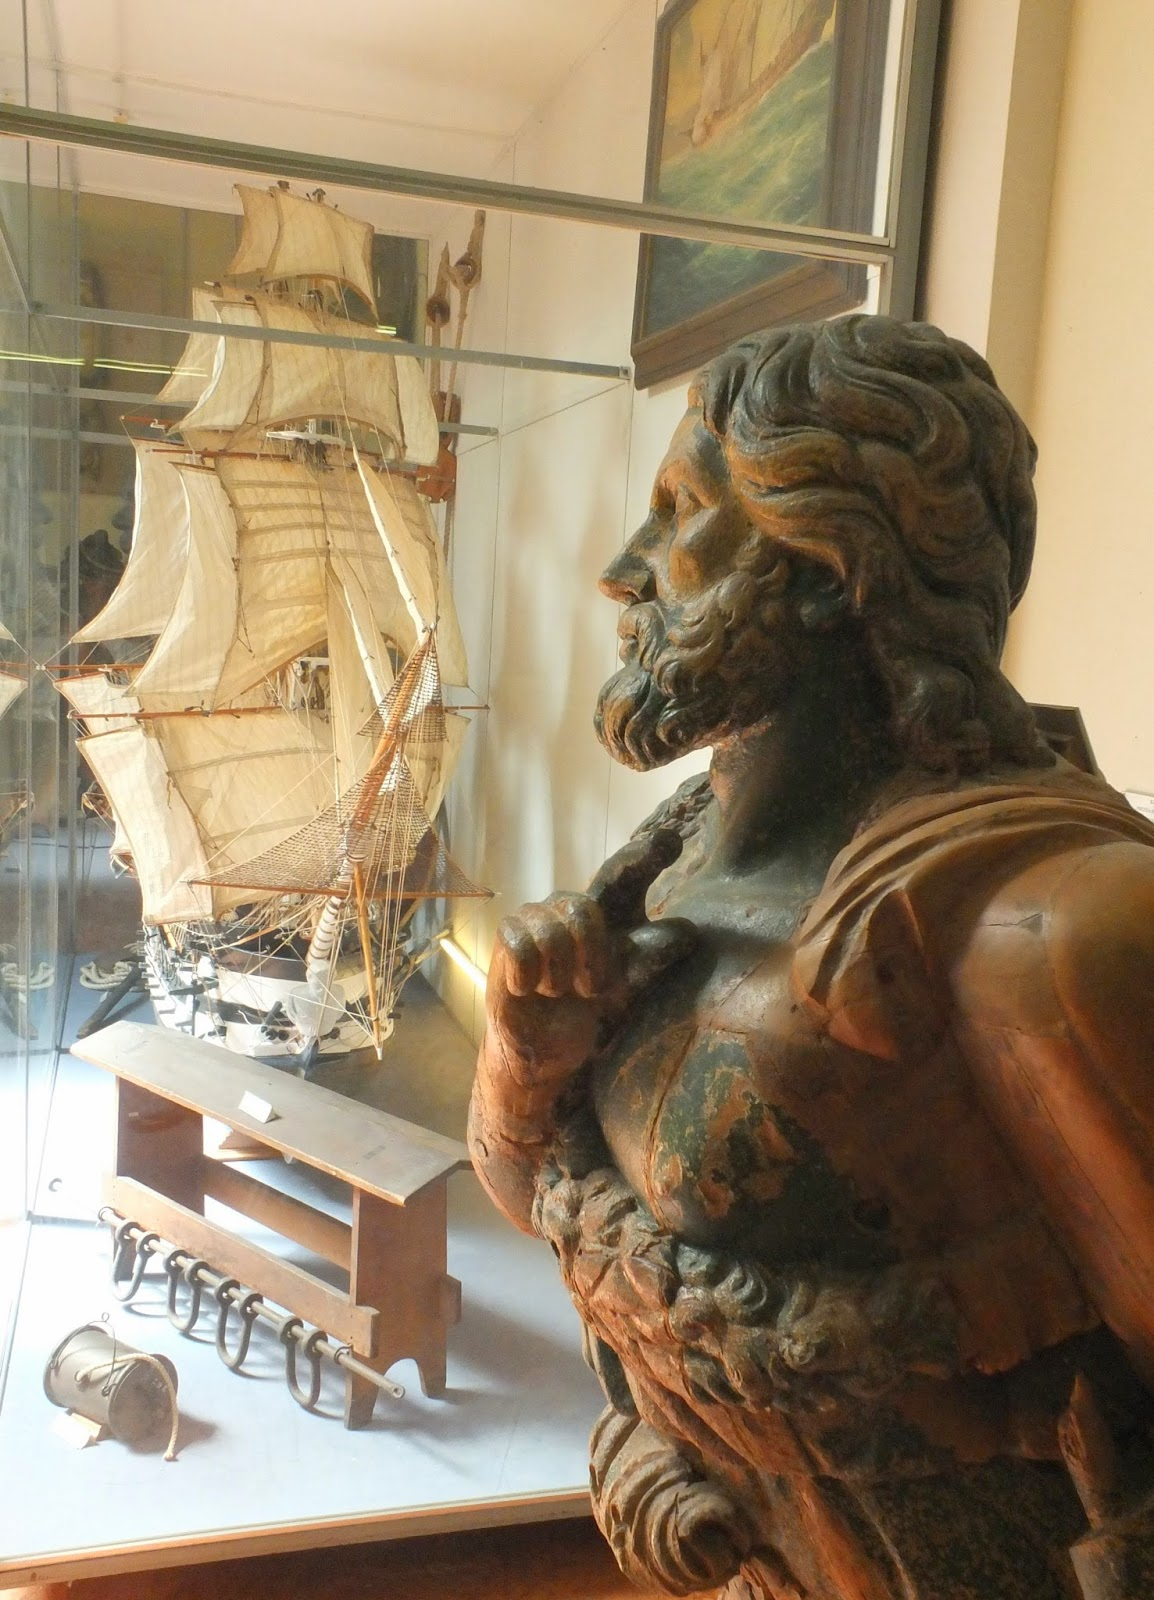 Figurehead and Ship Model, La Spezia